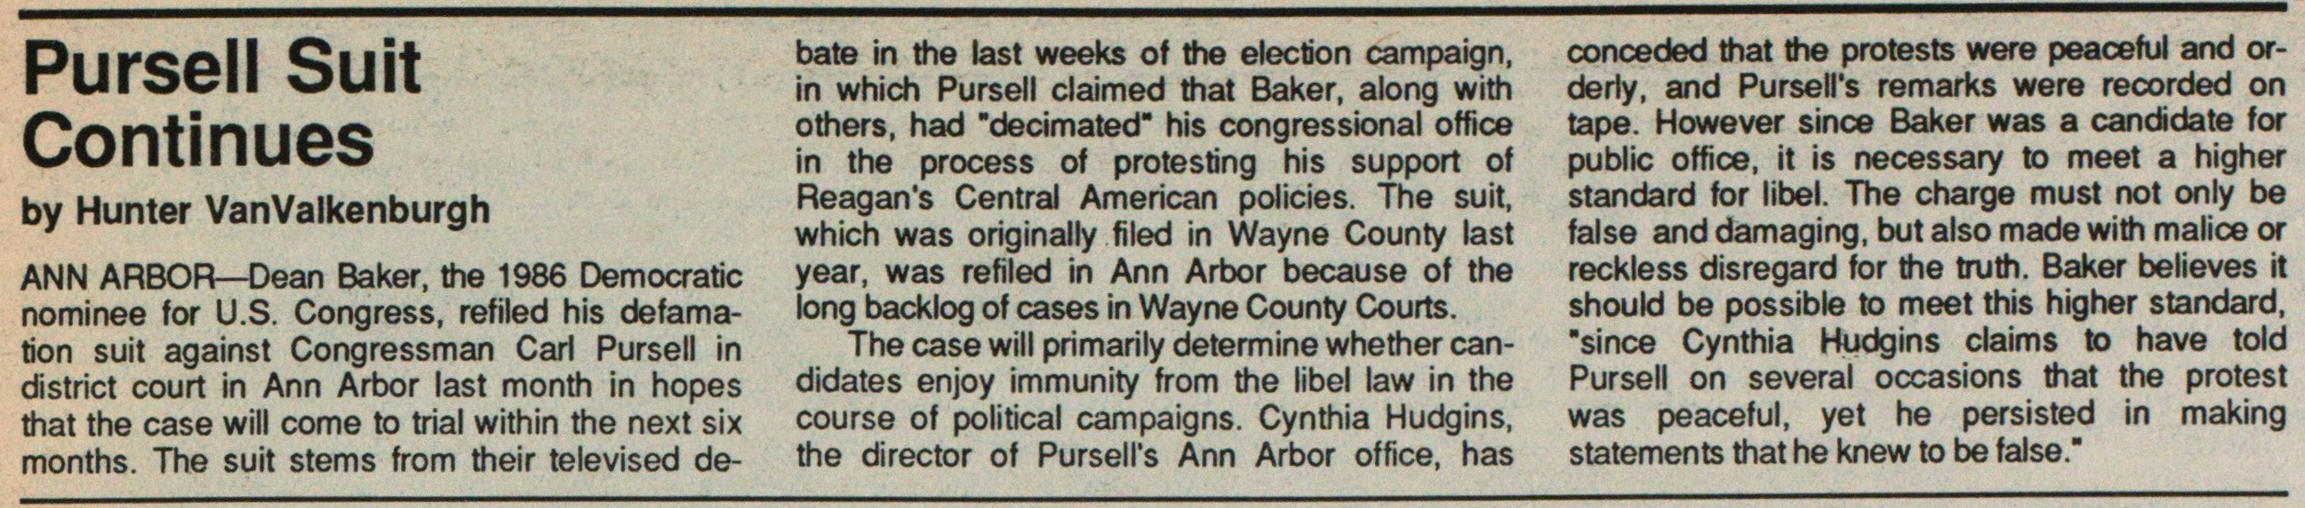 Pursell Suit Continues image